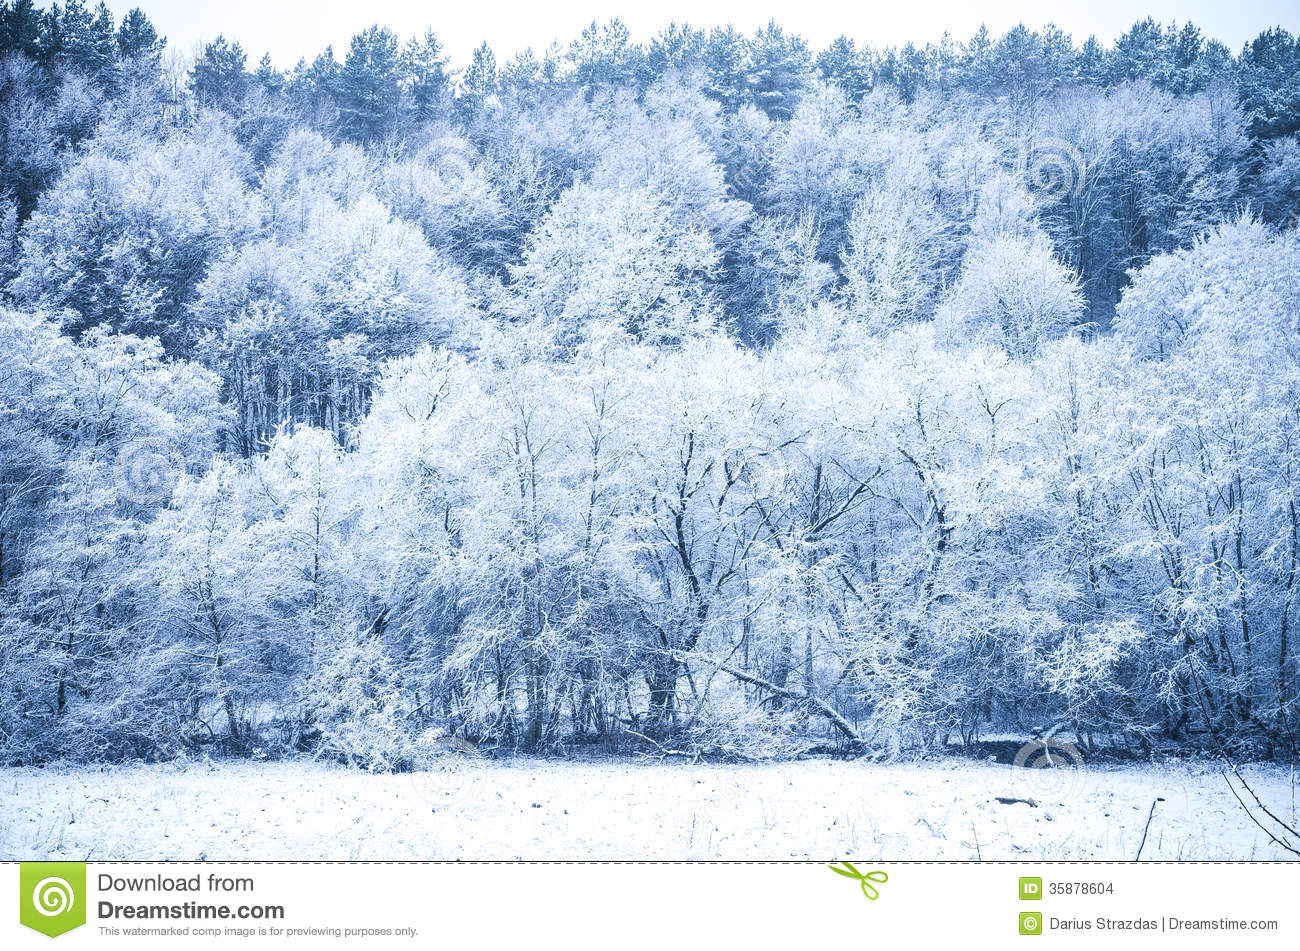 Winter forest with trees covered in frost rime